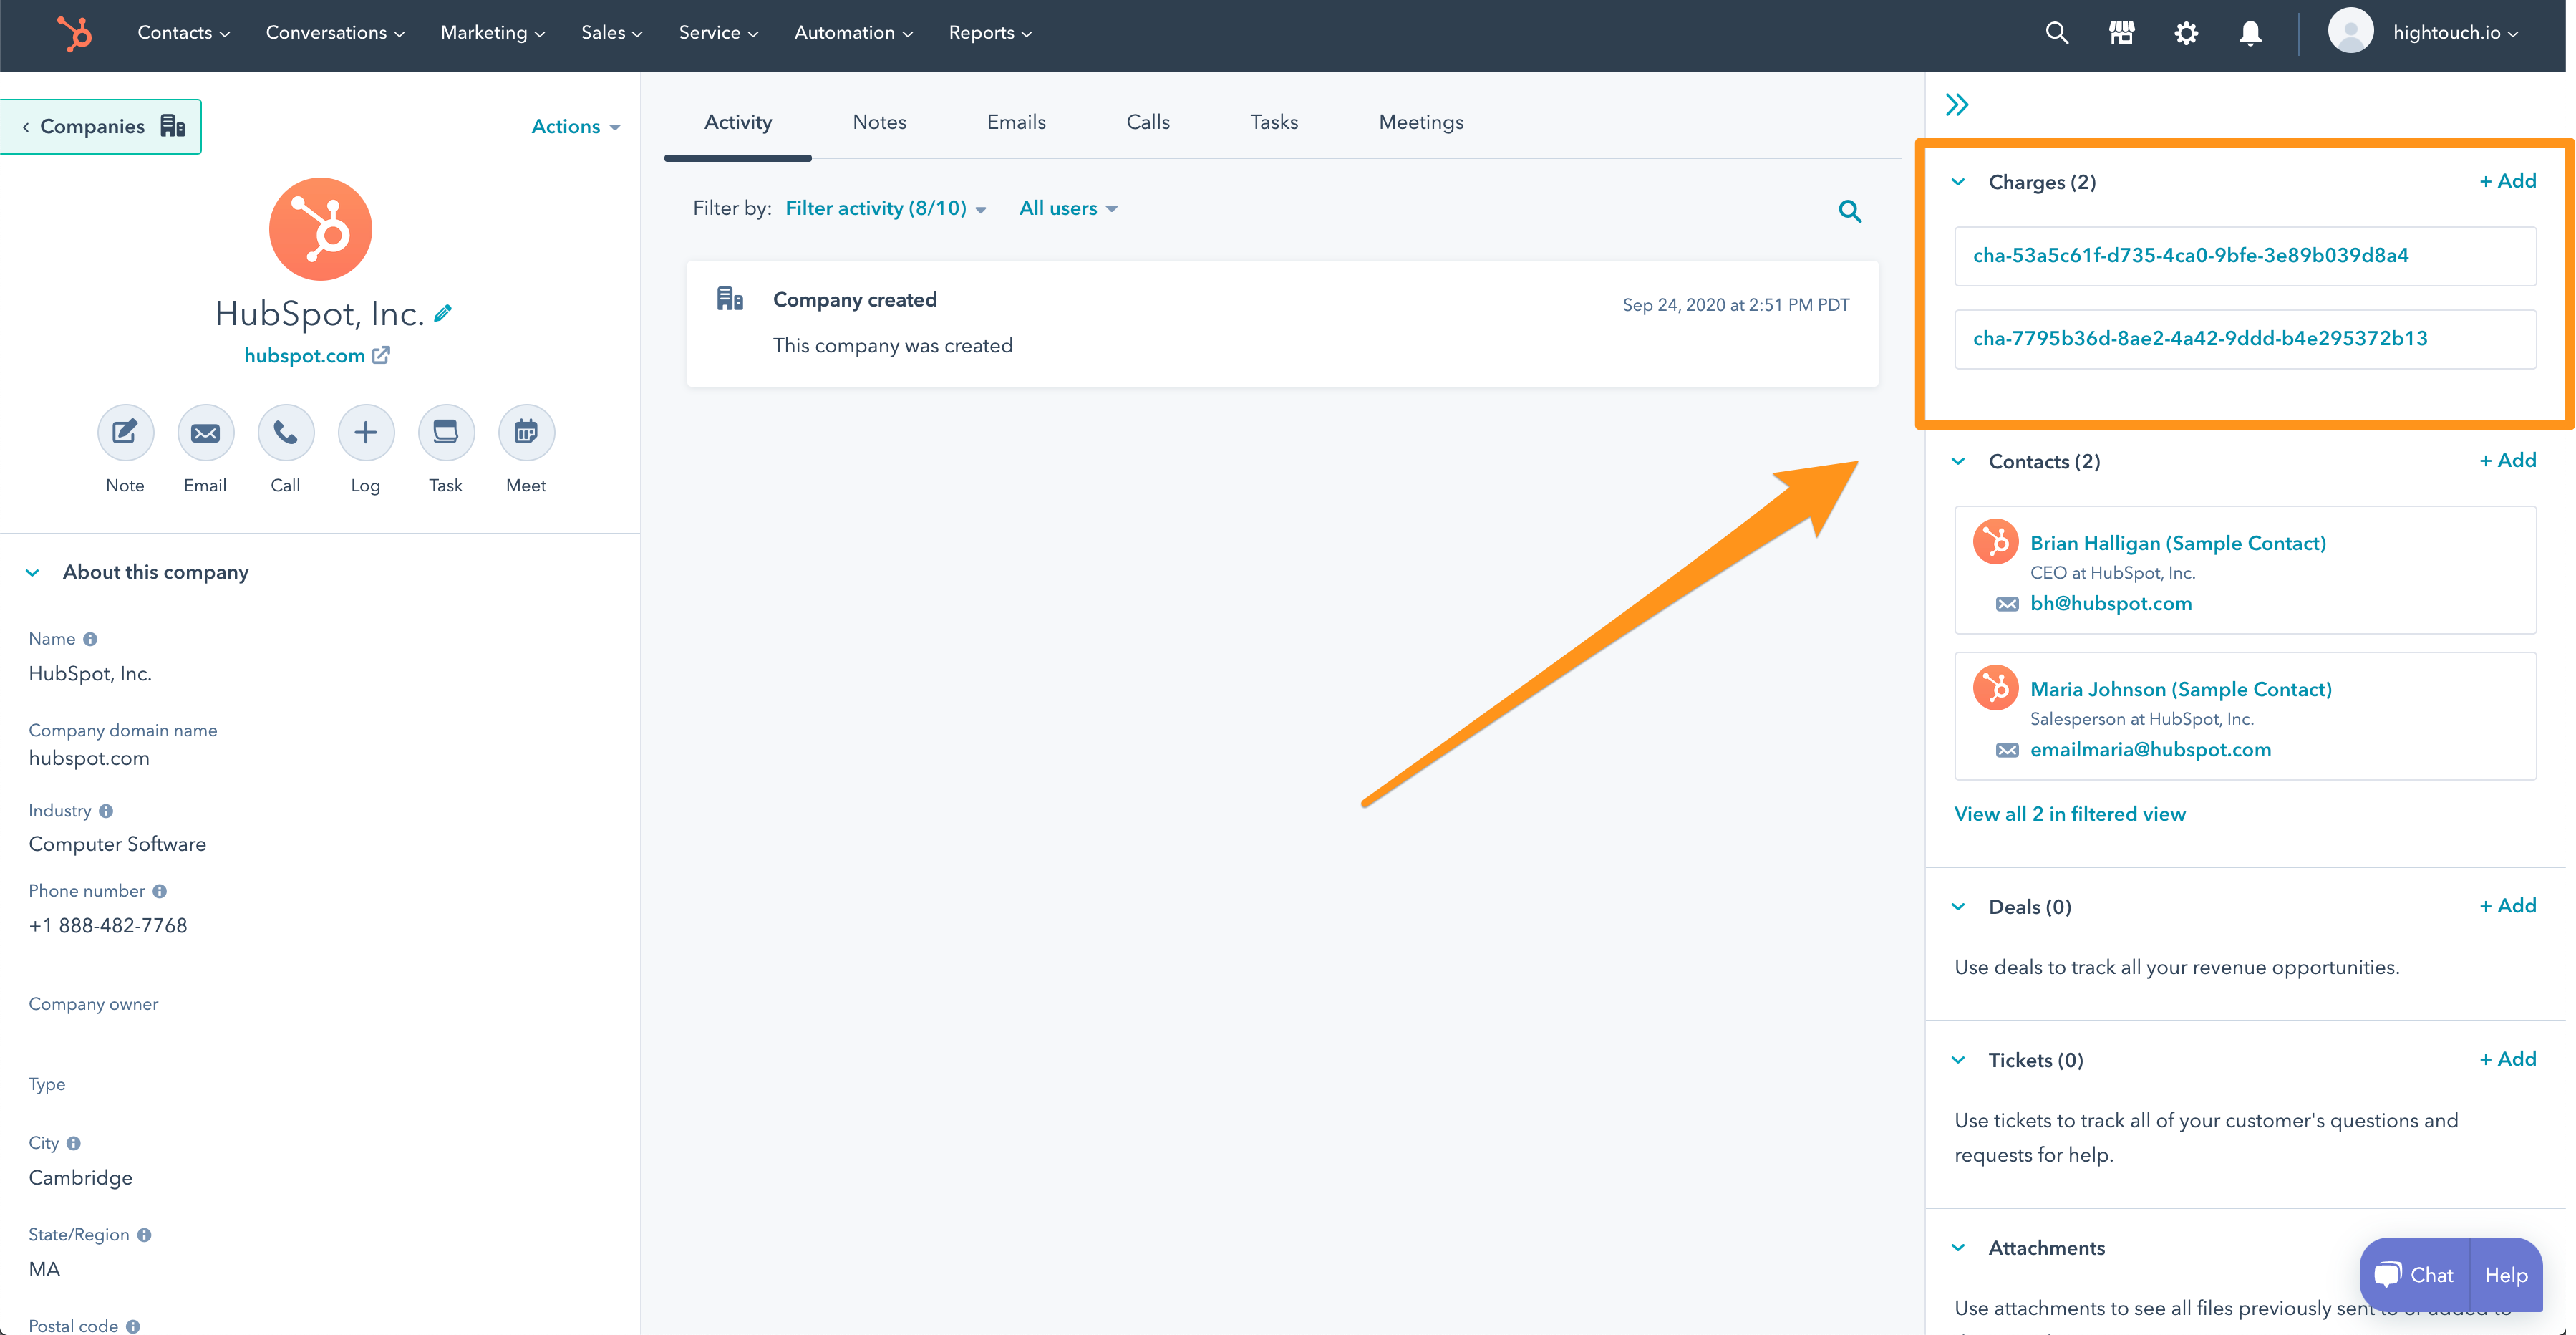 how-to-sync-custom-objects-and-fields-from-your-data-warehouse-to-hubspot 2.png